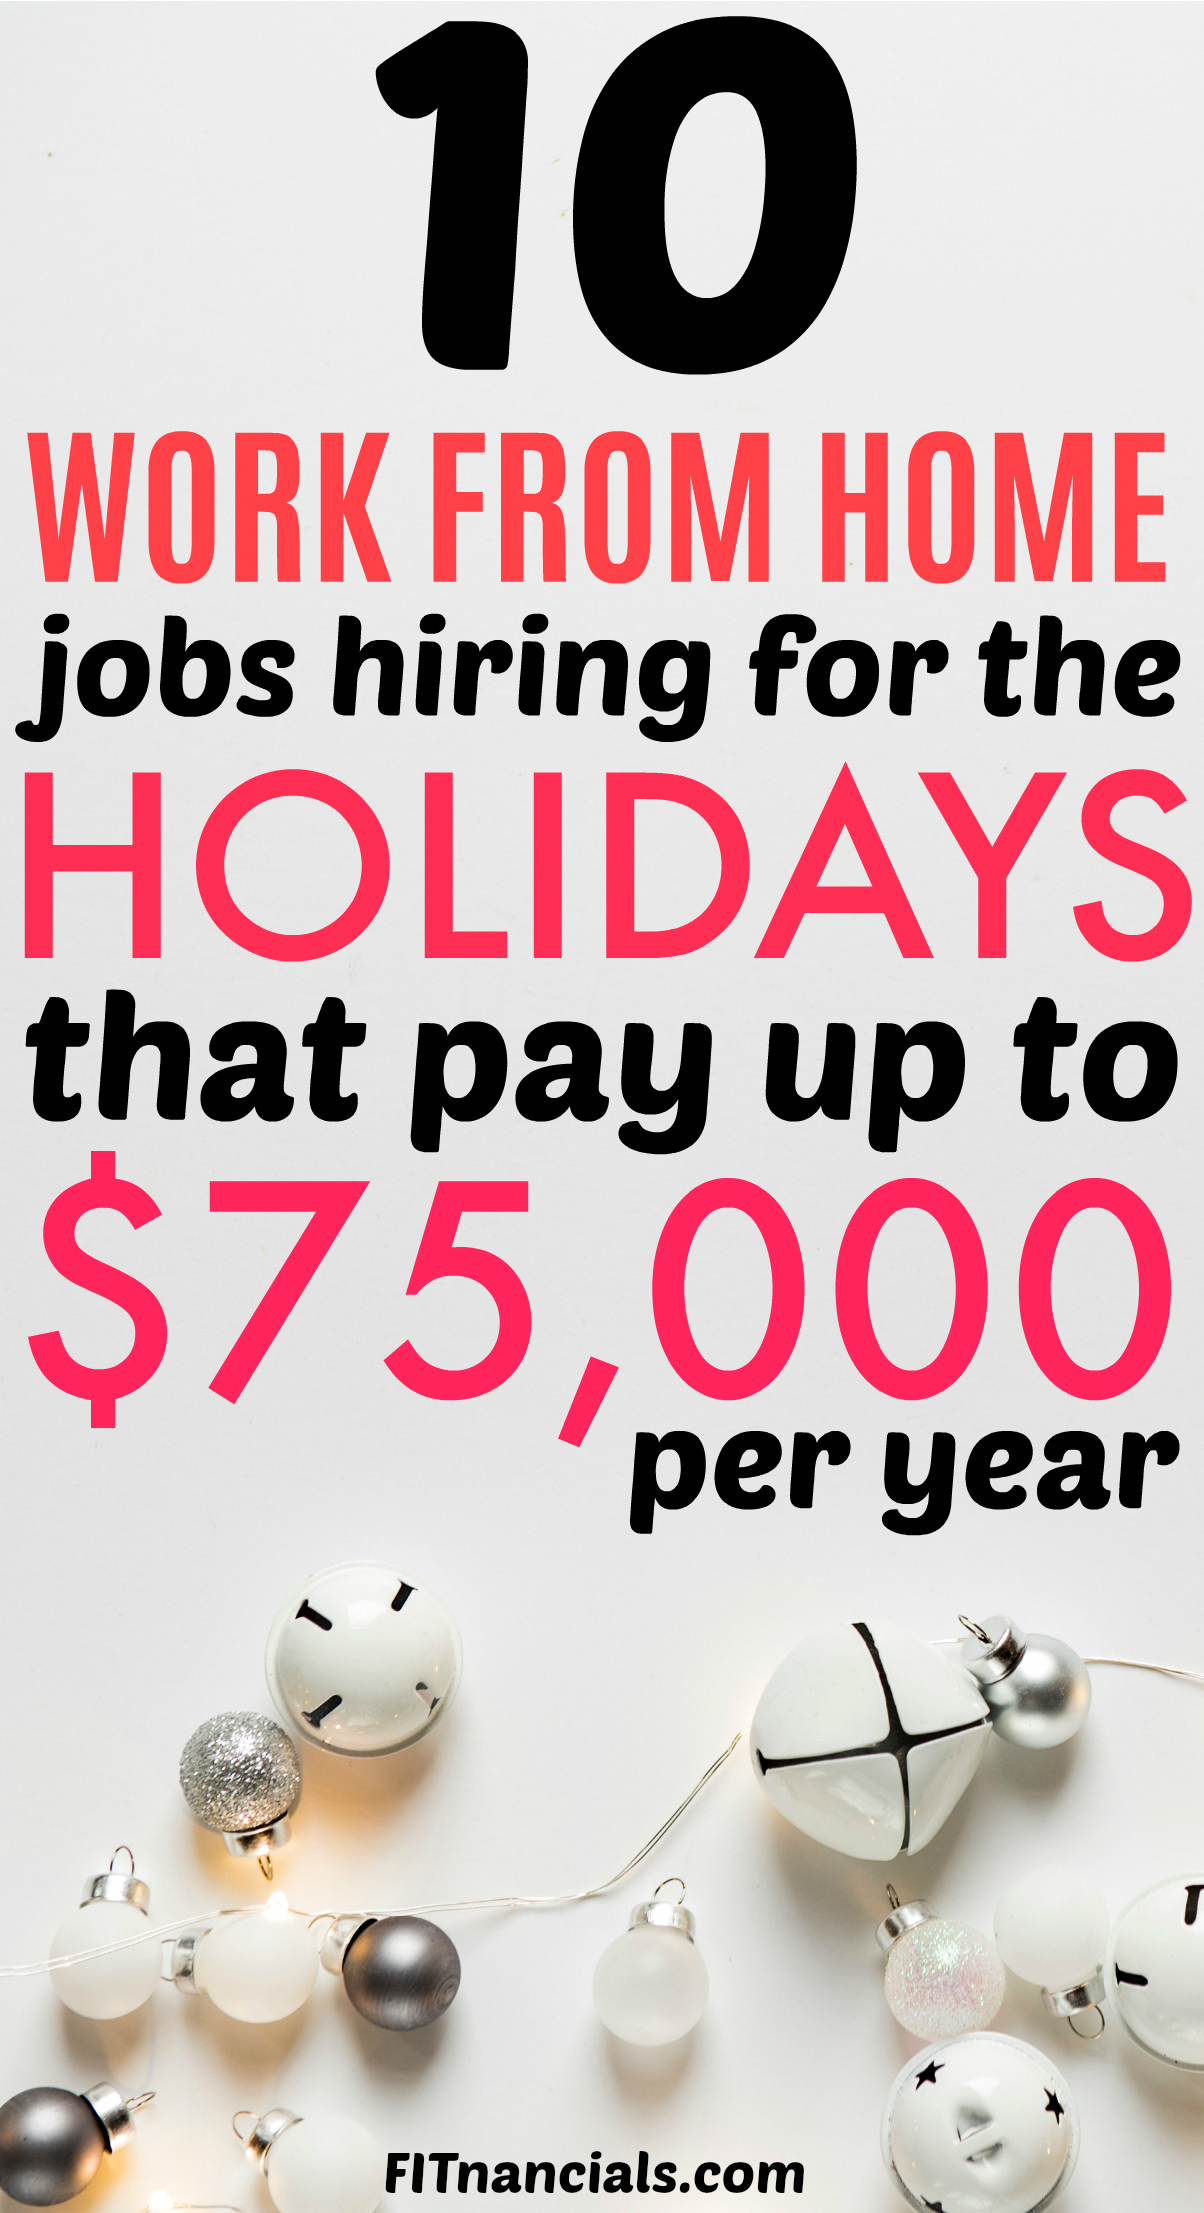 Work From Home Jobs Part Time Indeed Home Jobs Work From Home Jobs Working From Home